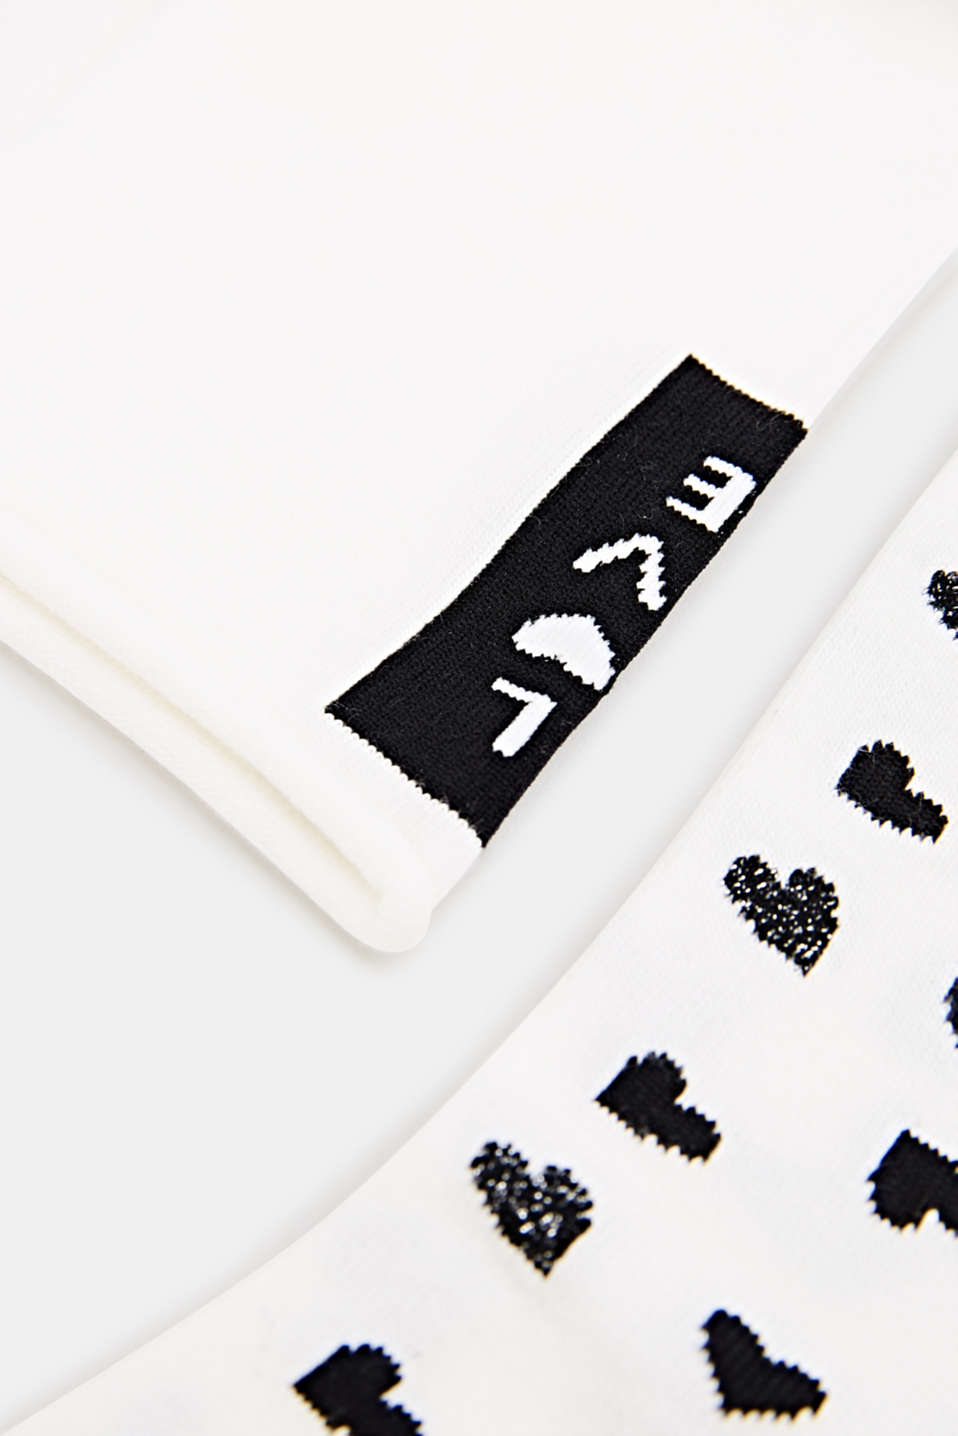 In a double pack: Socks with intarsia hearts, OFFWHITE, detail image number 1